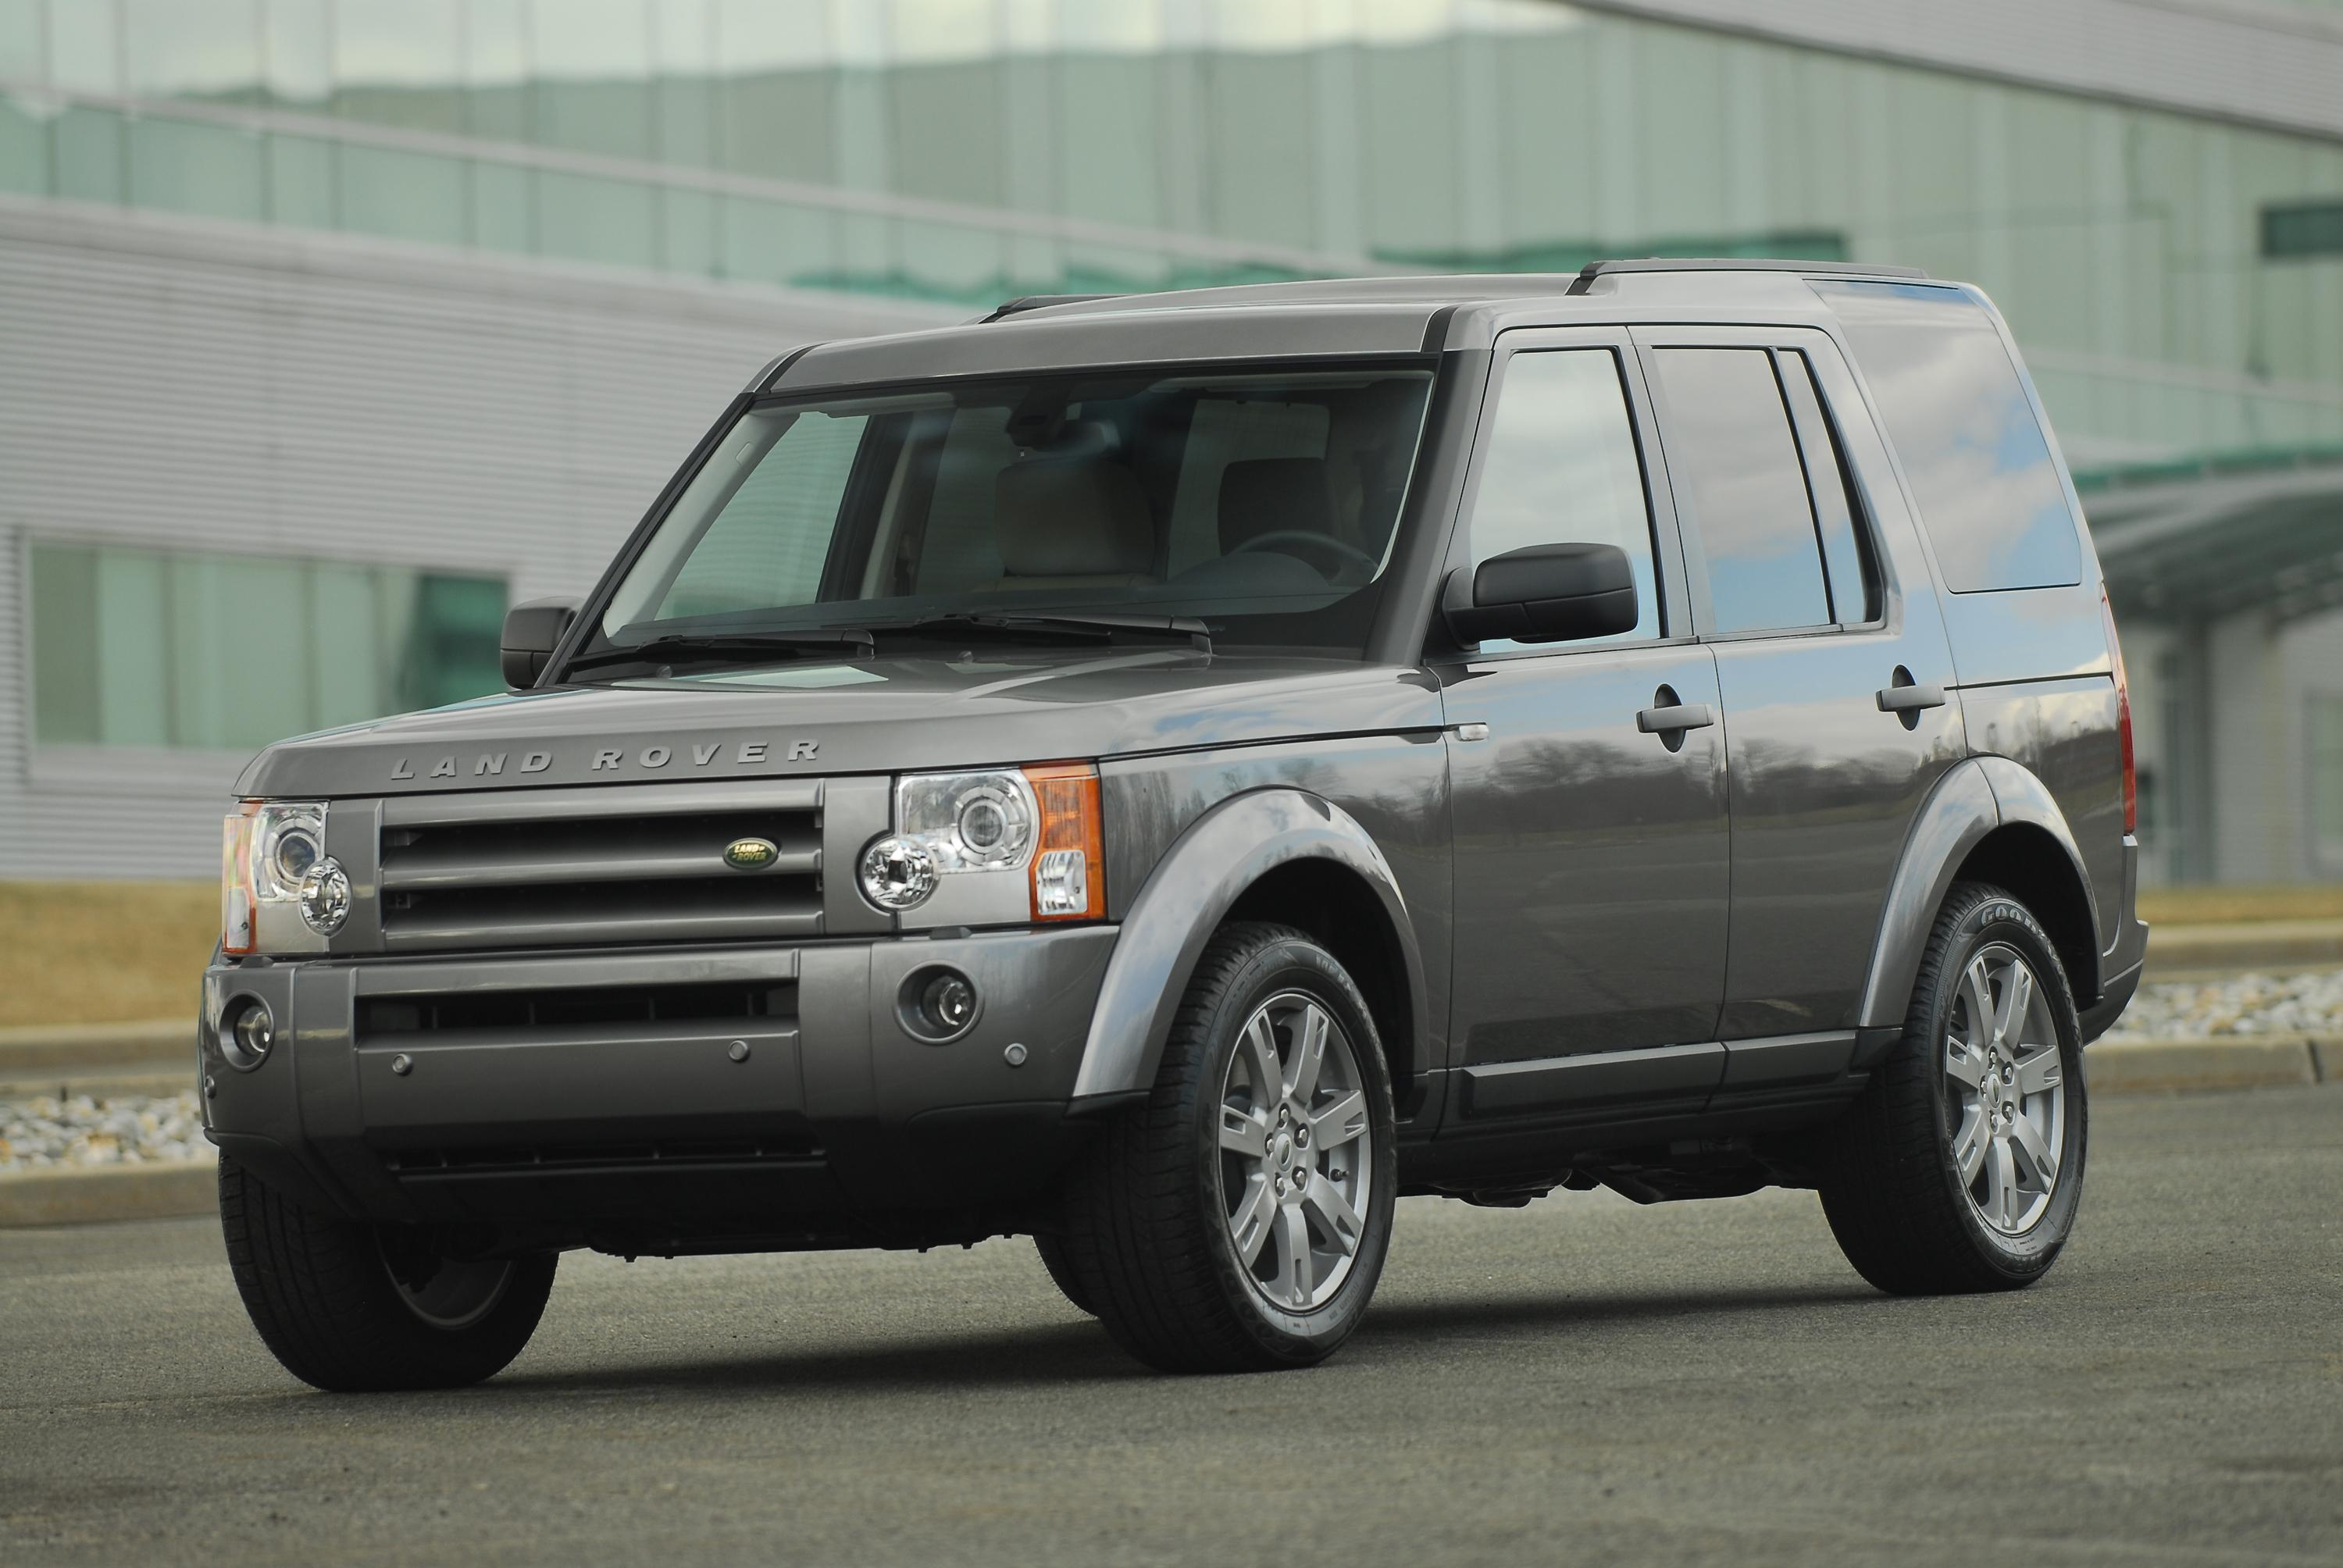 Land rover unveiled at the new york auto show the 2009 lr3 a suv that revolutionized the mid priced suv category with its impressive technology and